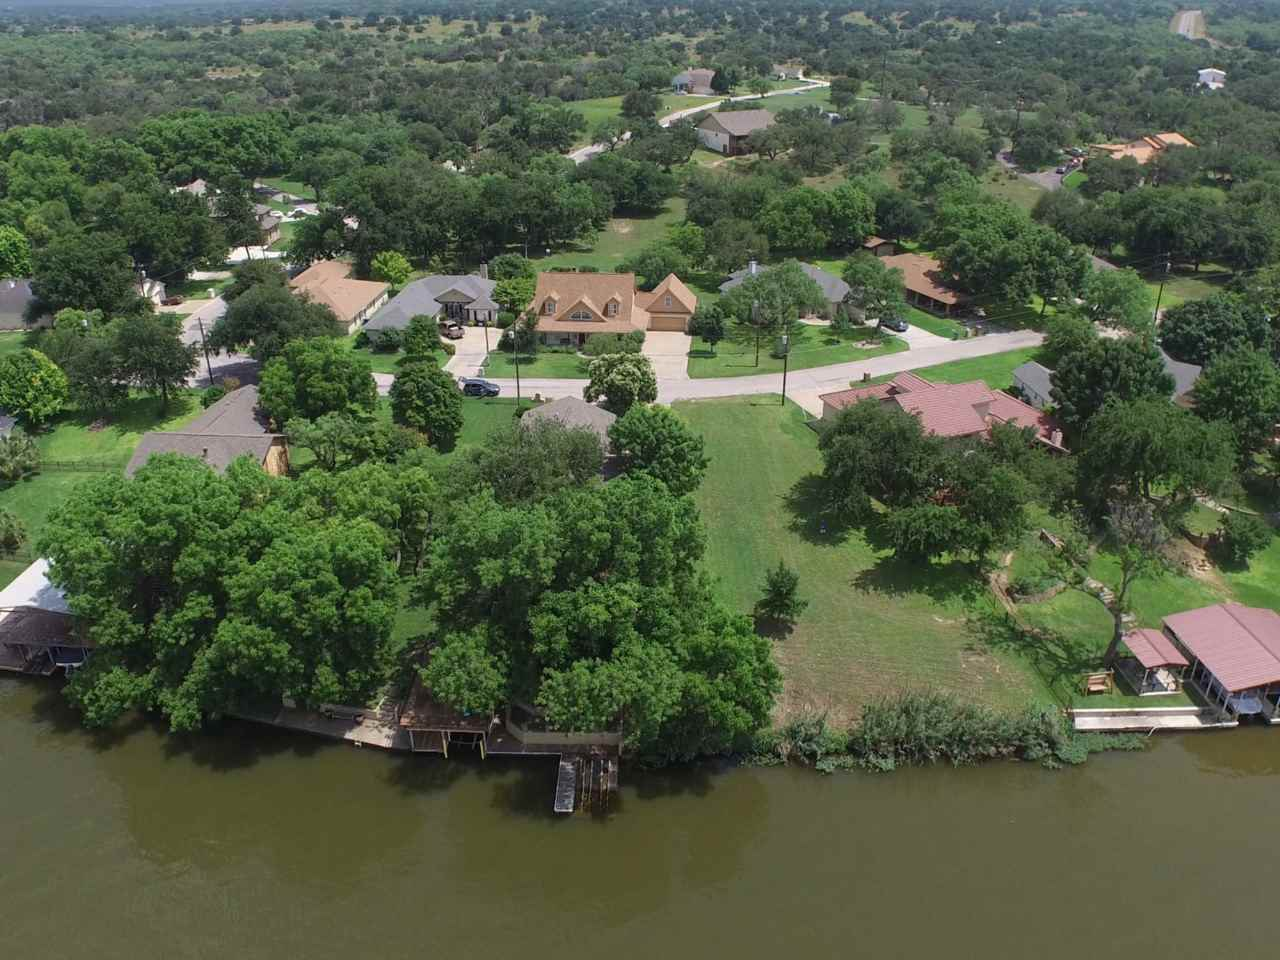 Land for Sale at 12 & 13 Bridgepoint 12 & 13 Bridgepoint Kingsland, Texas 78639 United States